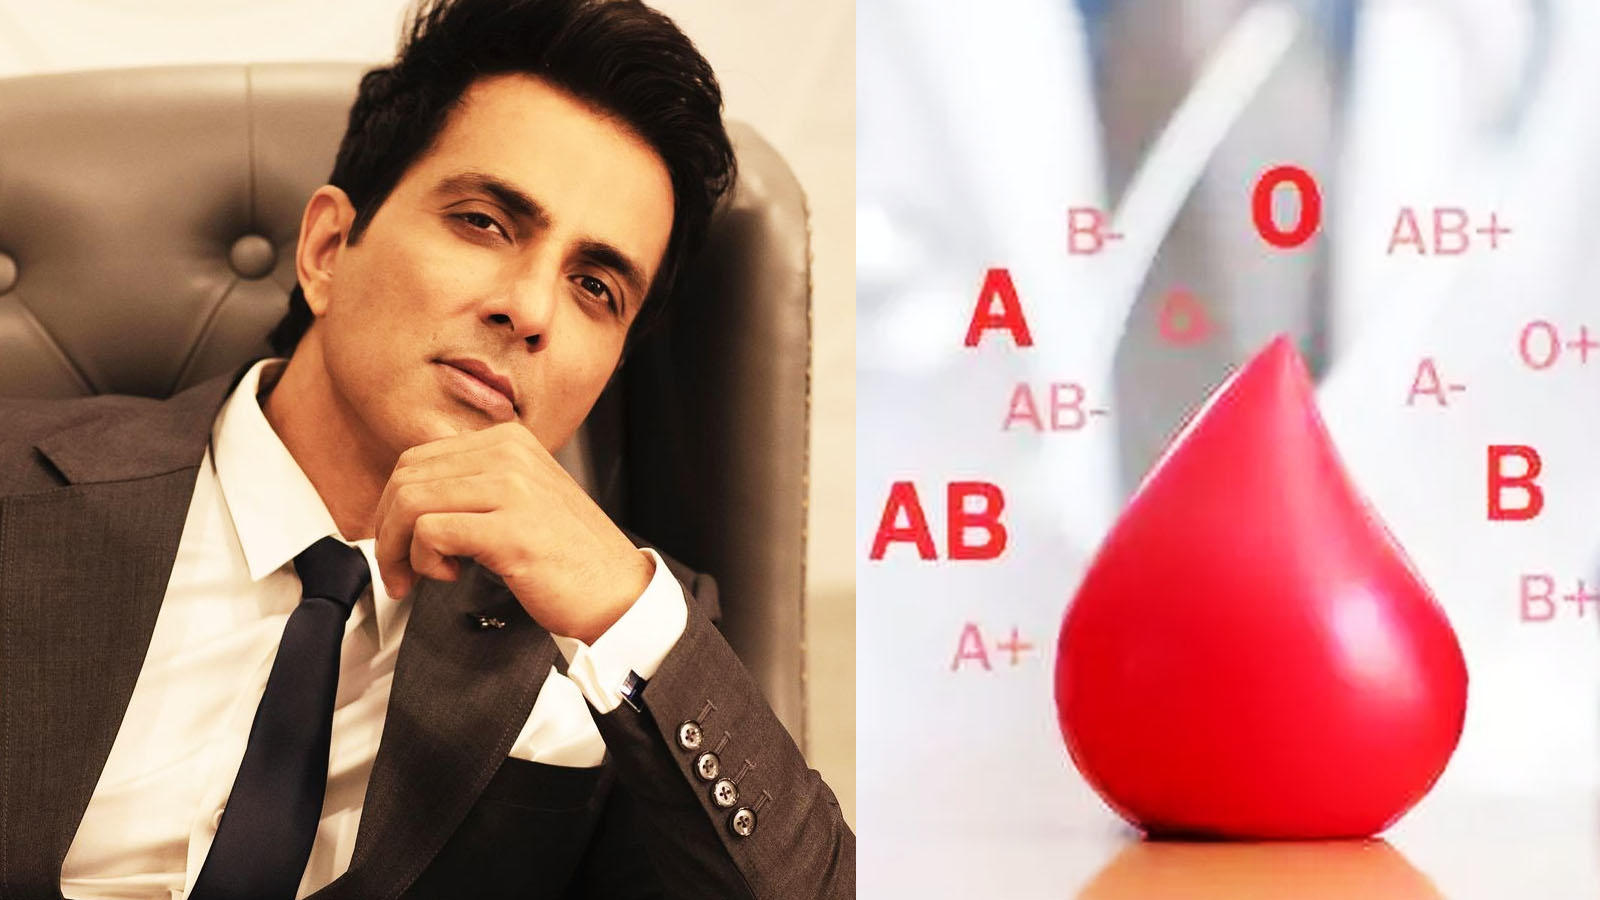 sonu-sood-to-launch-blood-bank-app-says-our-20-minutes-can-save-someones-life